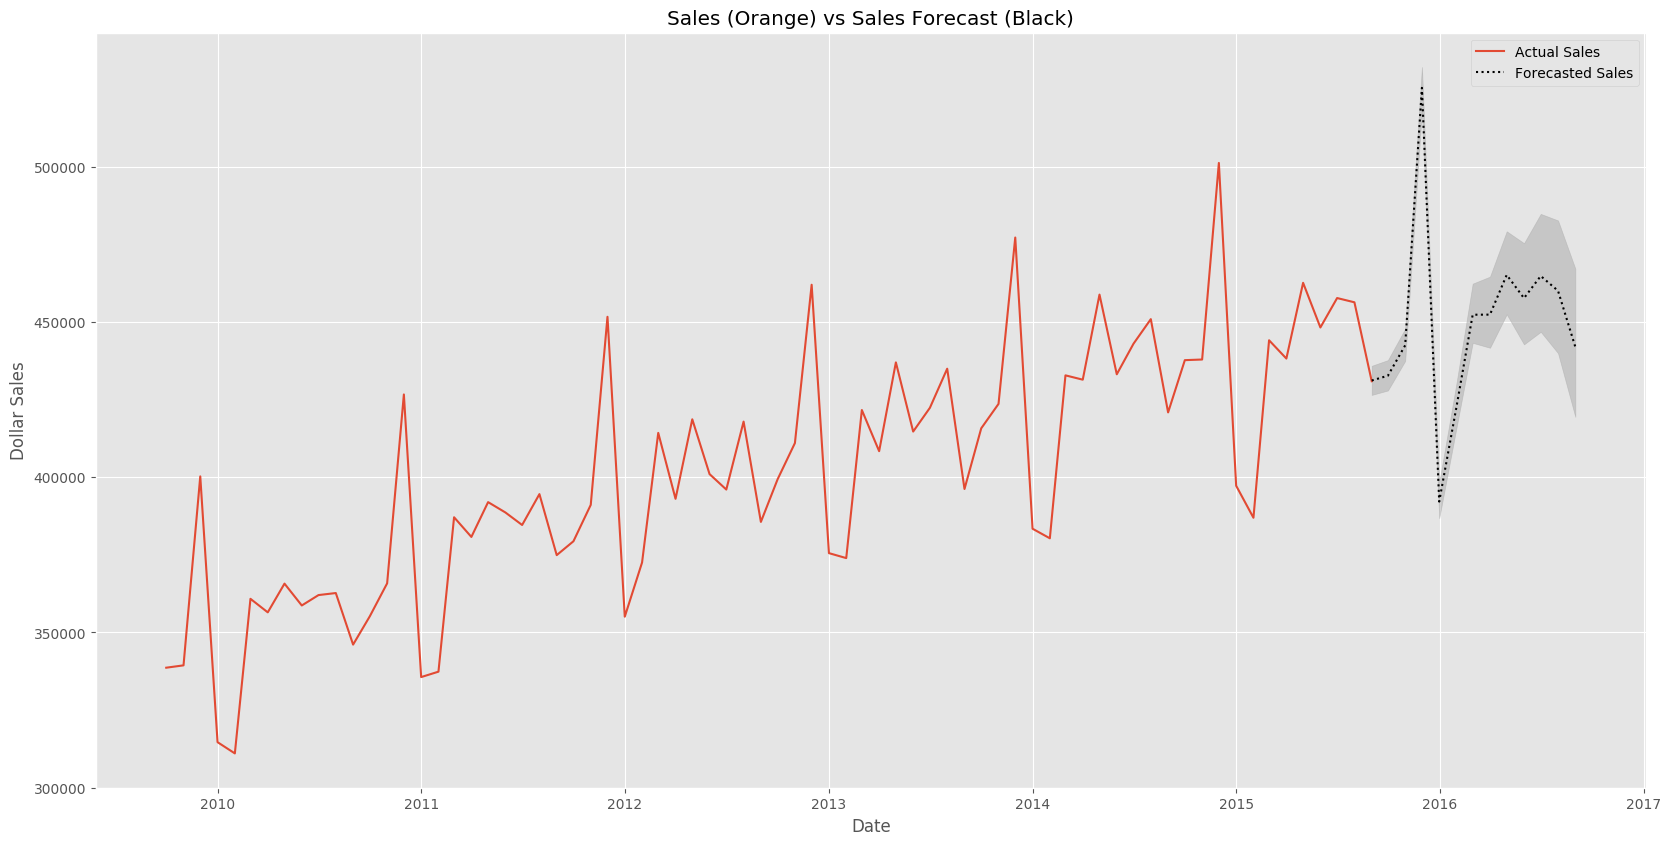 Actual Sales vs Forecasted Sales